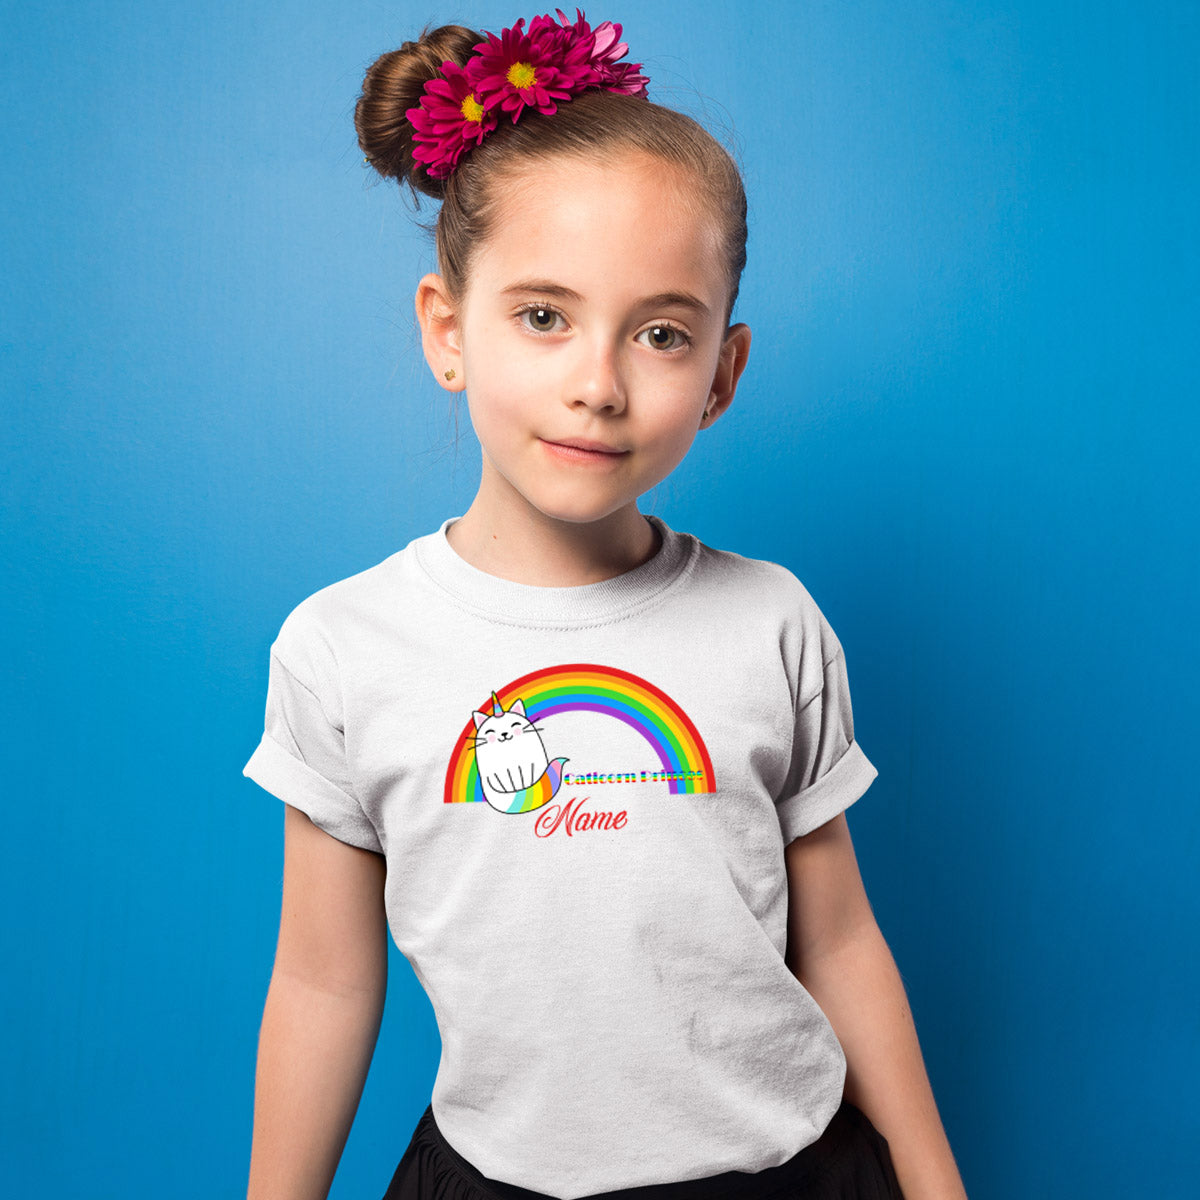 Sprinklecart Cute Caticorn Custom Name Printed Poly-Cotton T Shirt Wear for Kids (White)